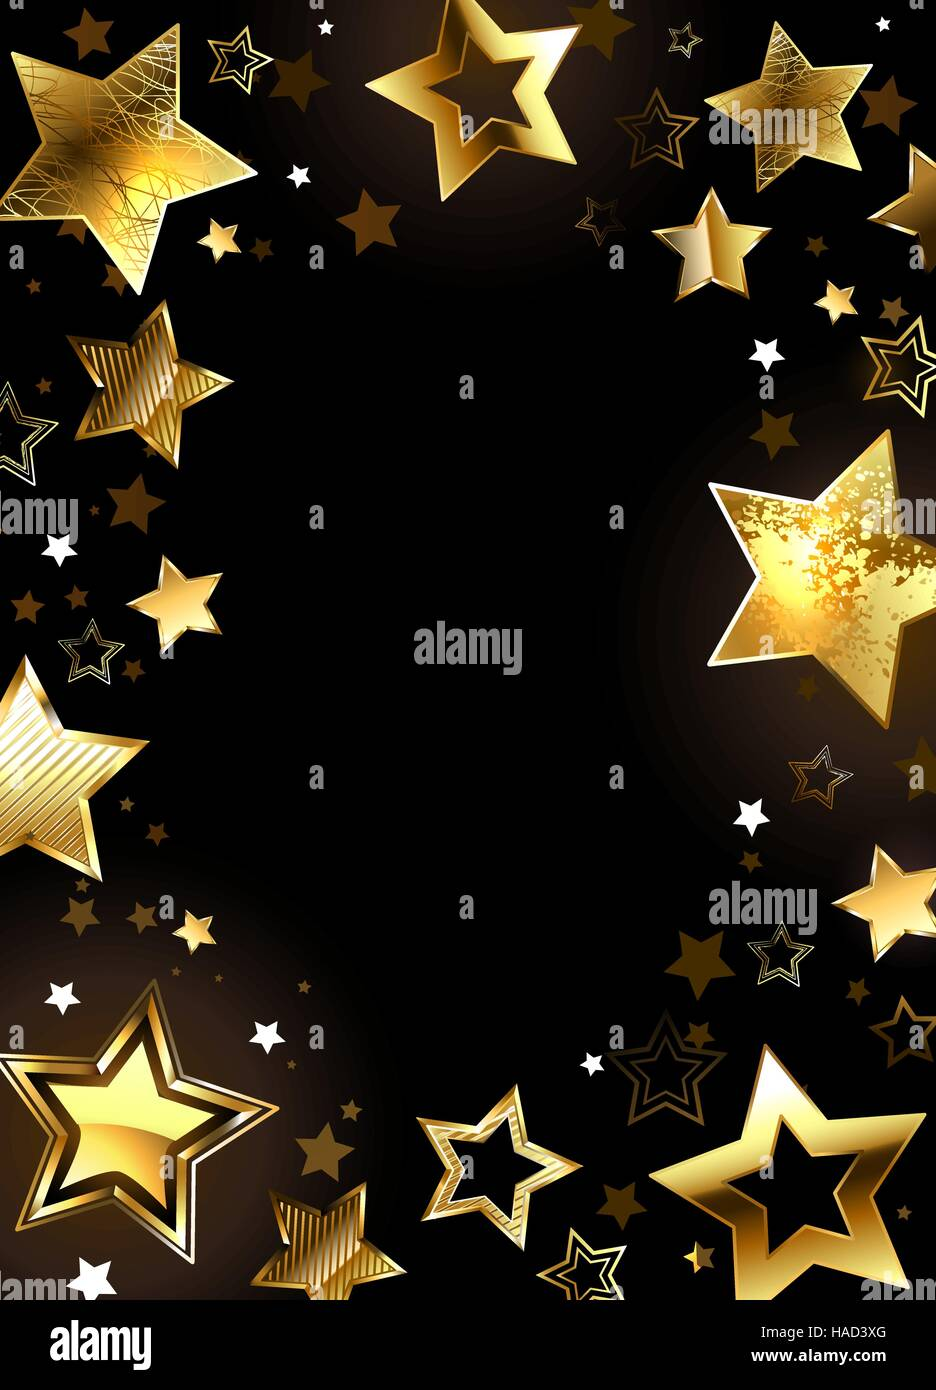 Frame With Shiny Gold Stars On A Black Background Design